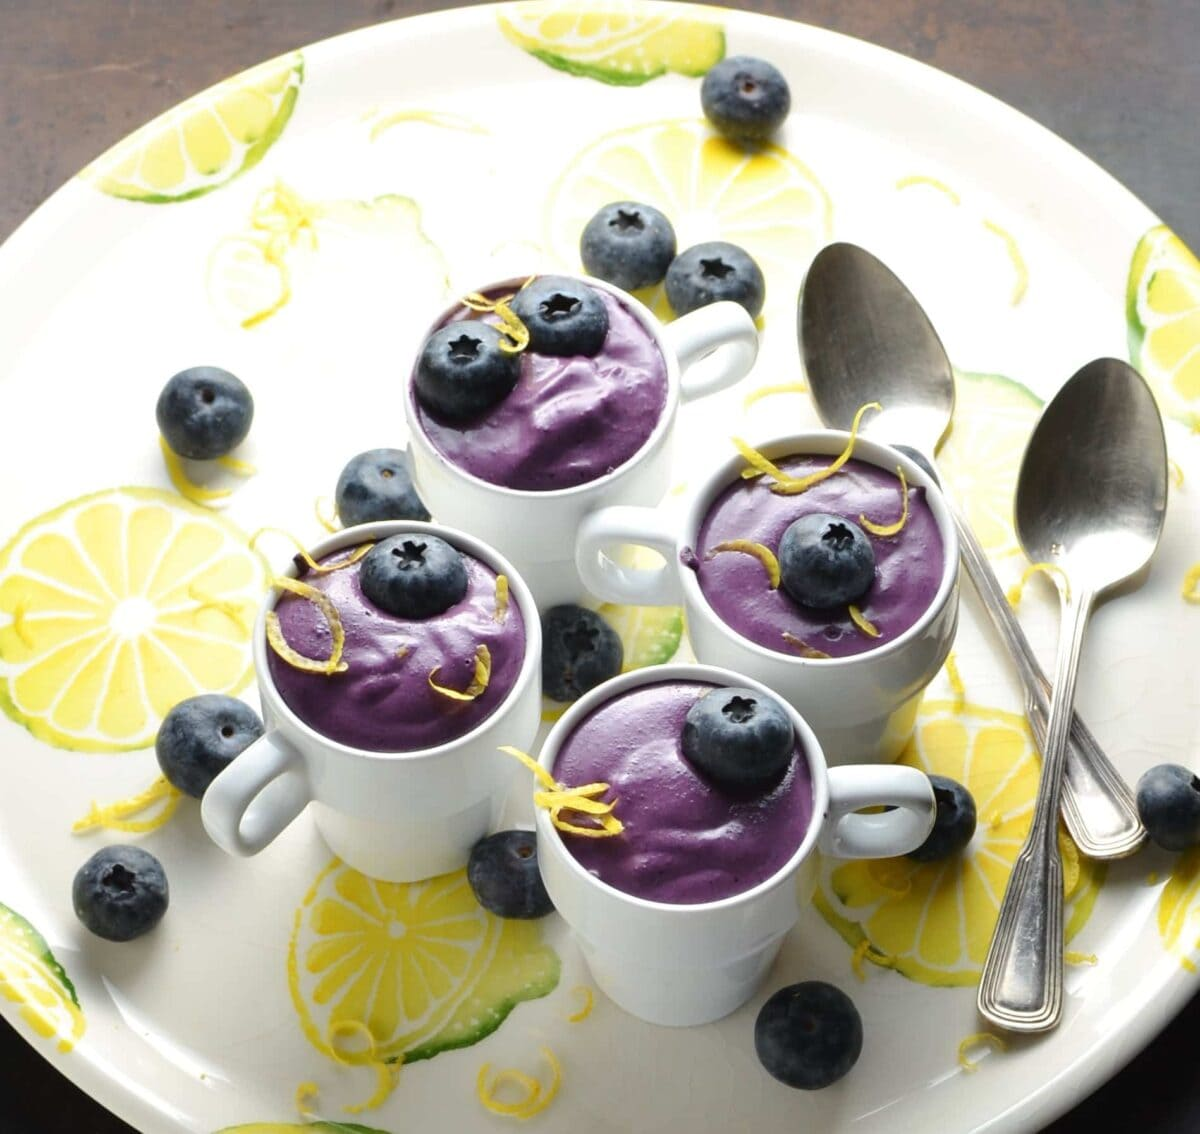 Blueberry cream cheese dessert in 4 white cups with garnish of blueberries and lemon zest, with 2 spoons on white plate with lemon pattern.